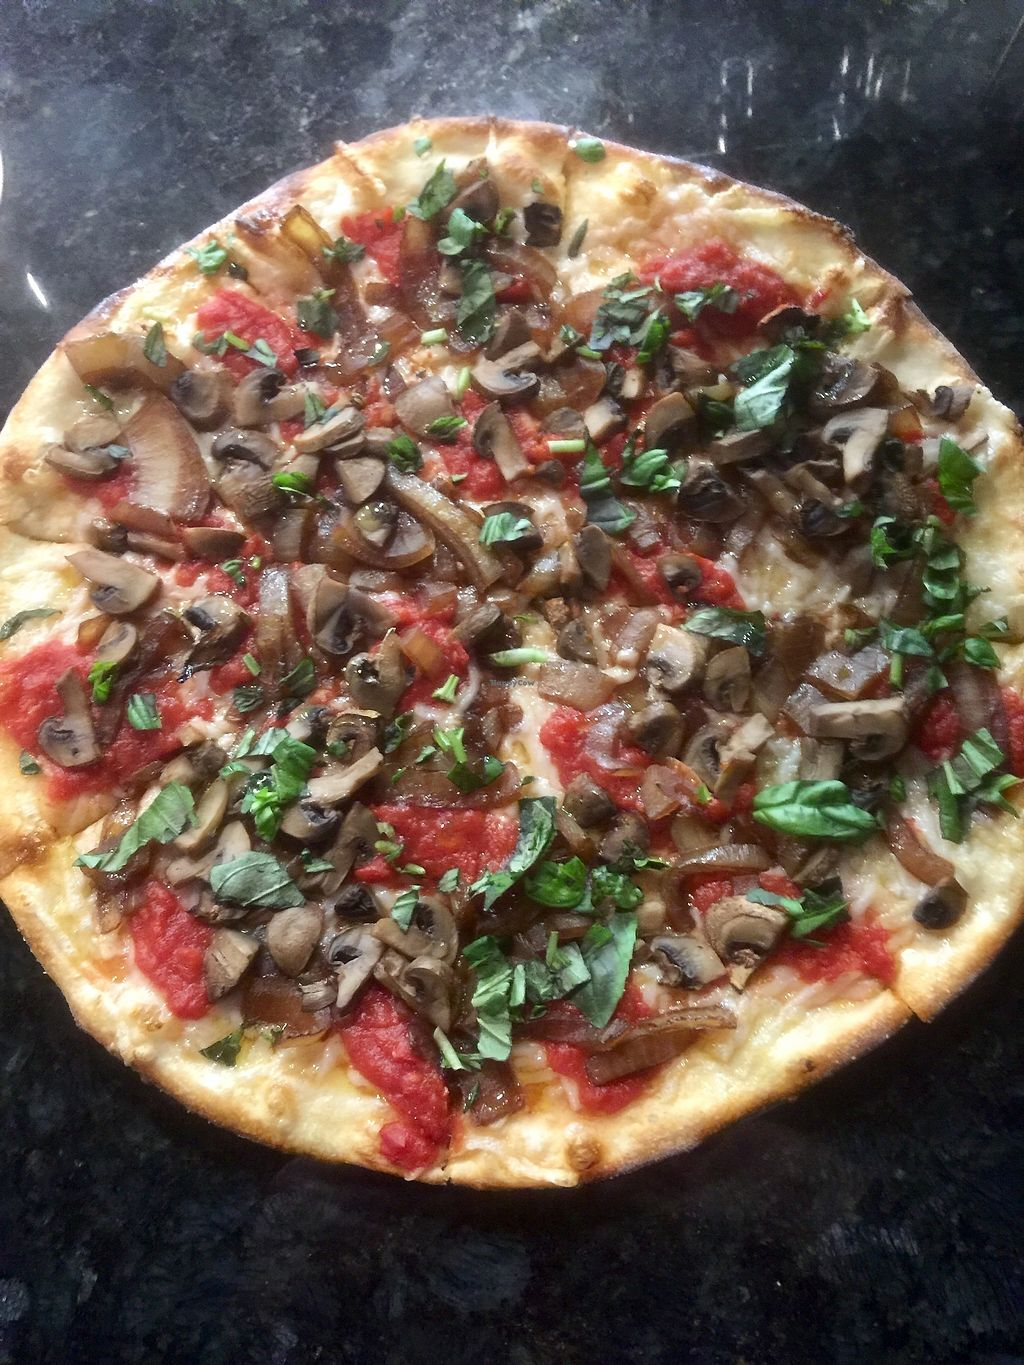 """Photo of Milano Wine Bar & Pizzeria  by <a href=""""/members/profile/aaronwesq"""">aaronwesq</a> <br/>Vegan - Super thin crusted Margherita Pizza with sautéed onions and mushrooms.  <br/> March 14, 2018  - <a href='/contact/abuse/image/112342/370731'>Report</a>"""